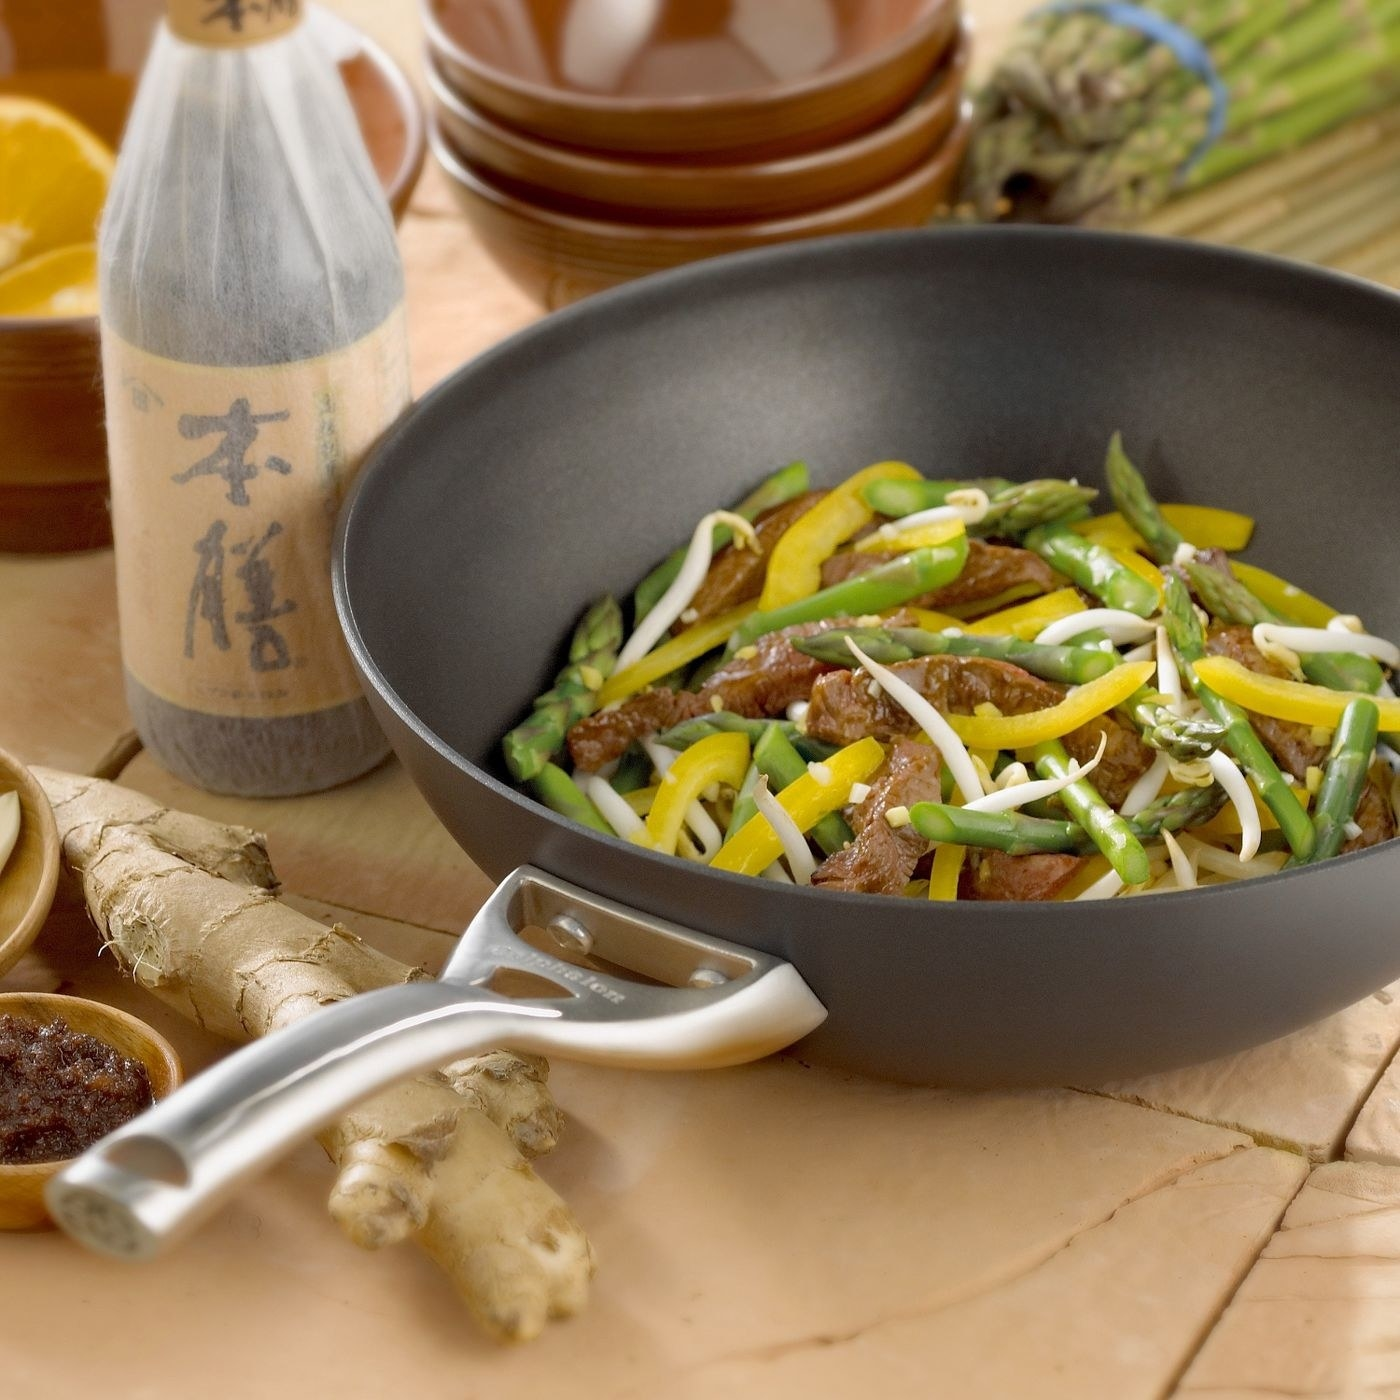 stainless steel wok with beef and vegetables in the wok